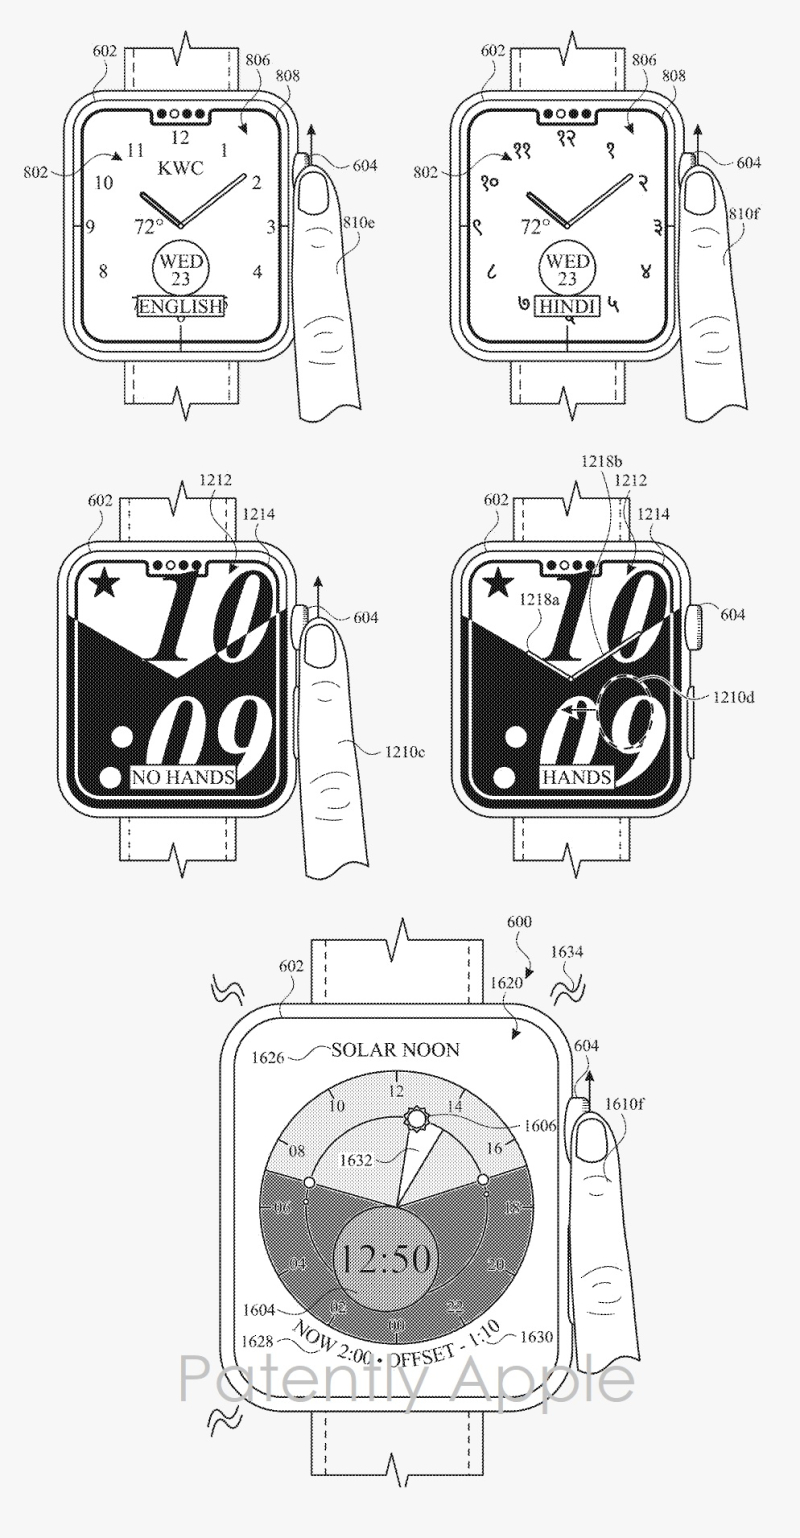 3 Sample of Apple Watch patent figs